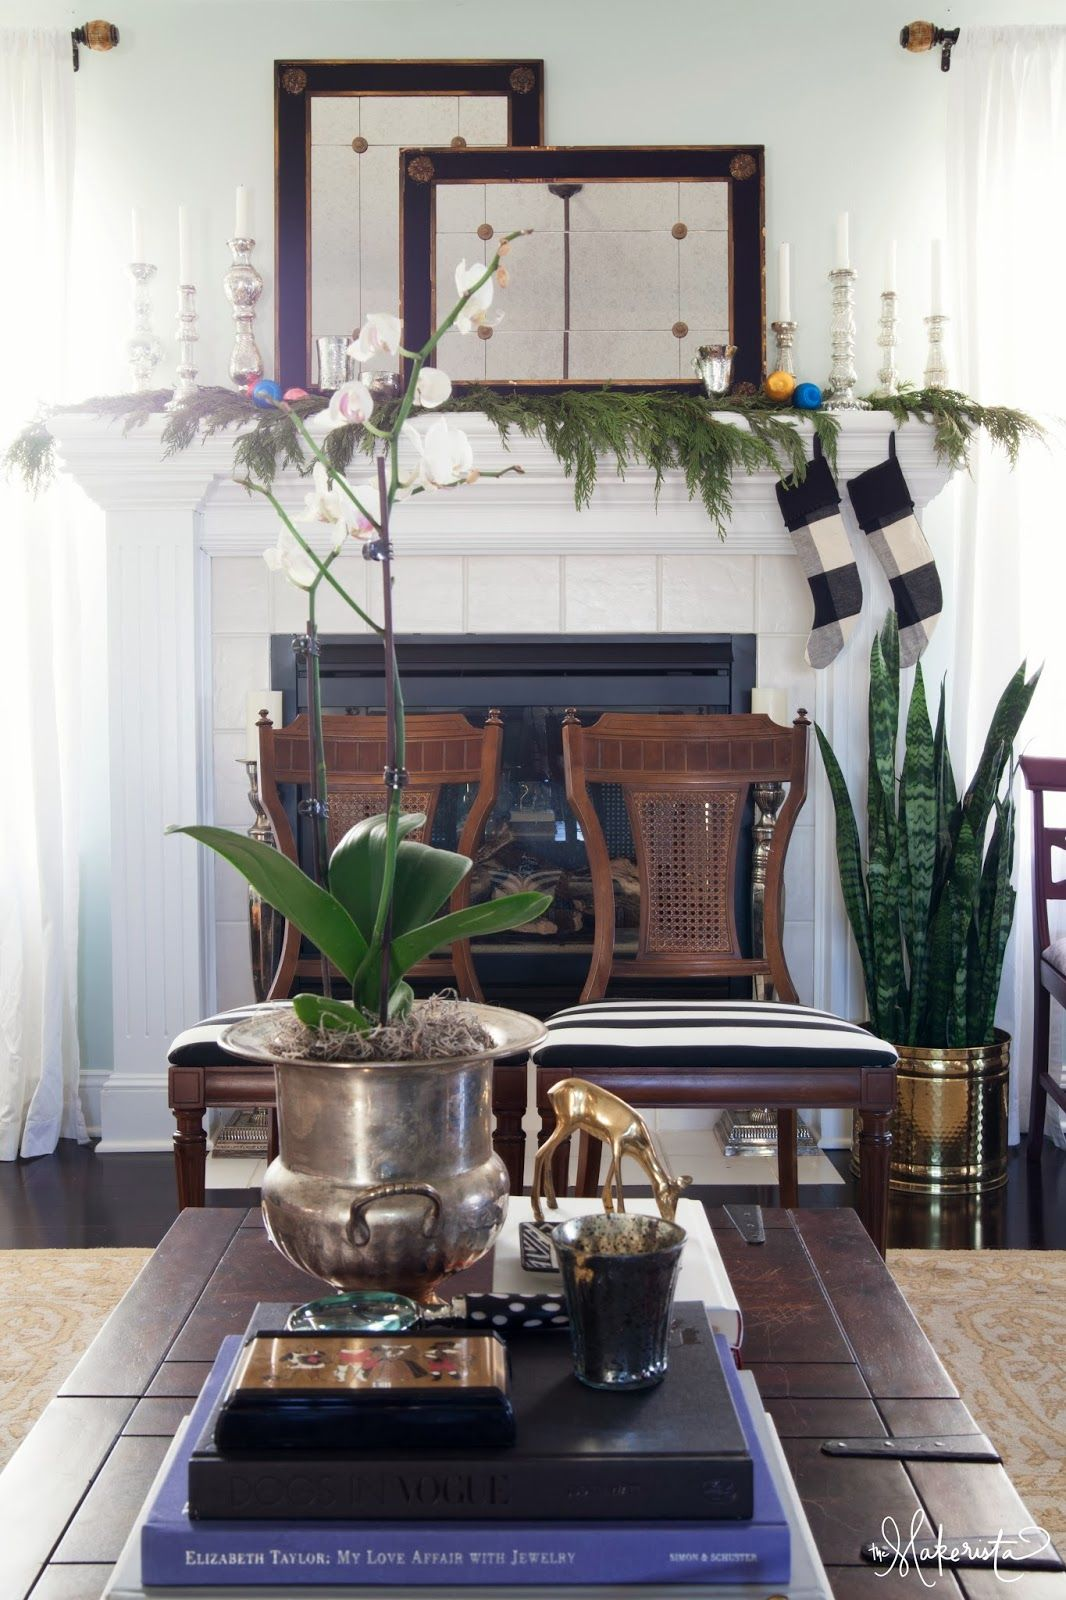 The Makerista: A Look at Our Home For Christmas with Blogger Stylin' Home Tours